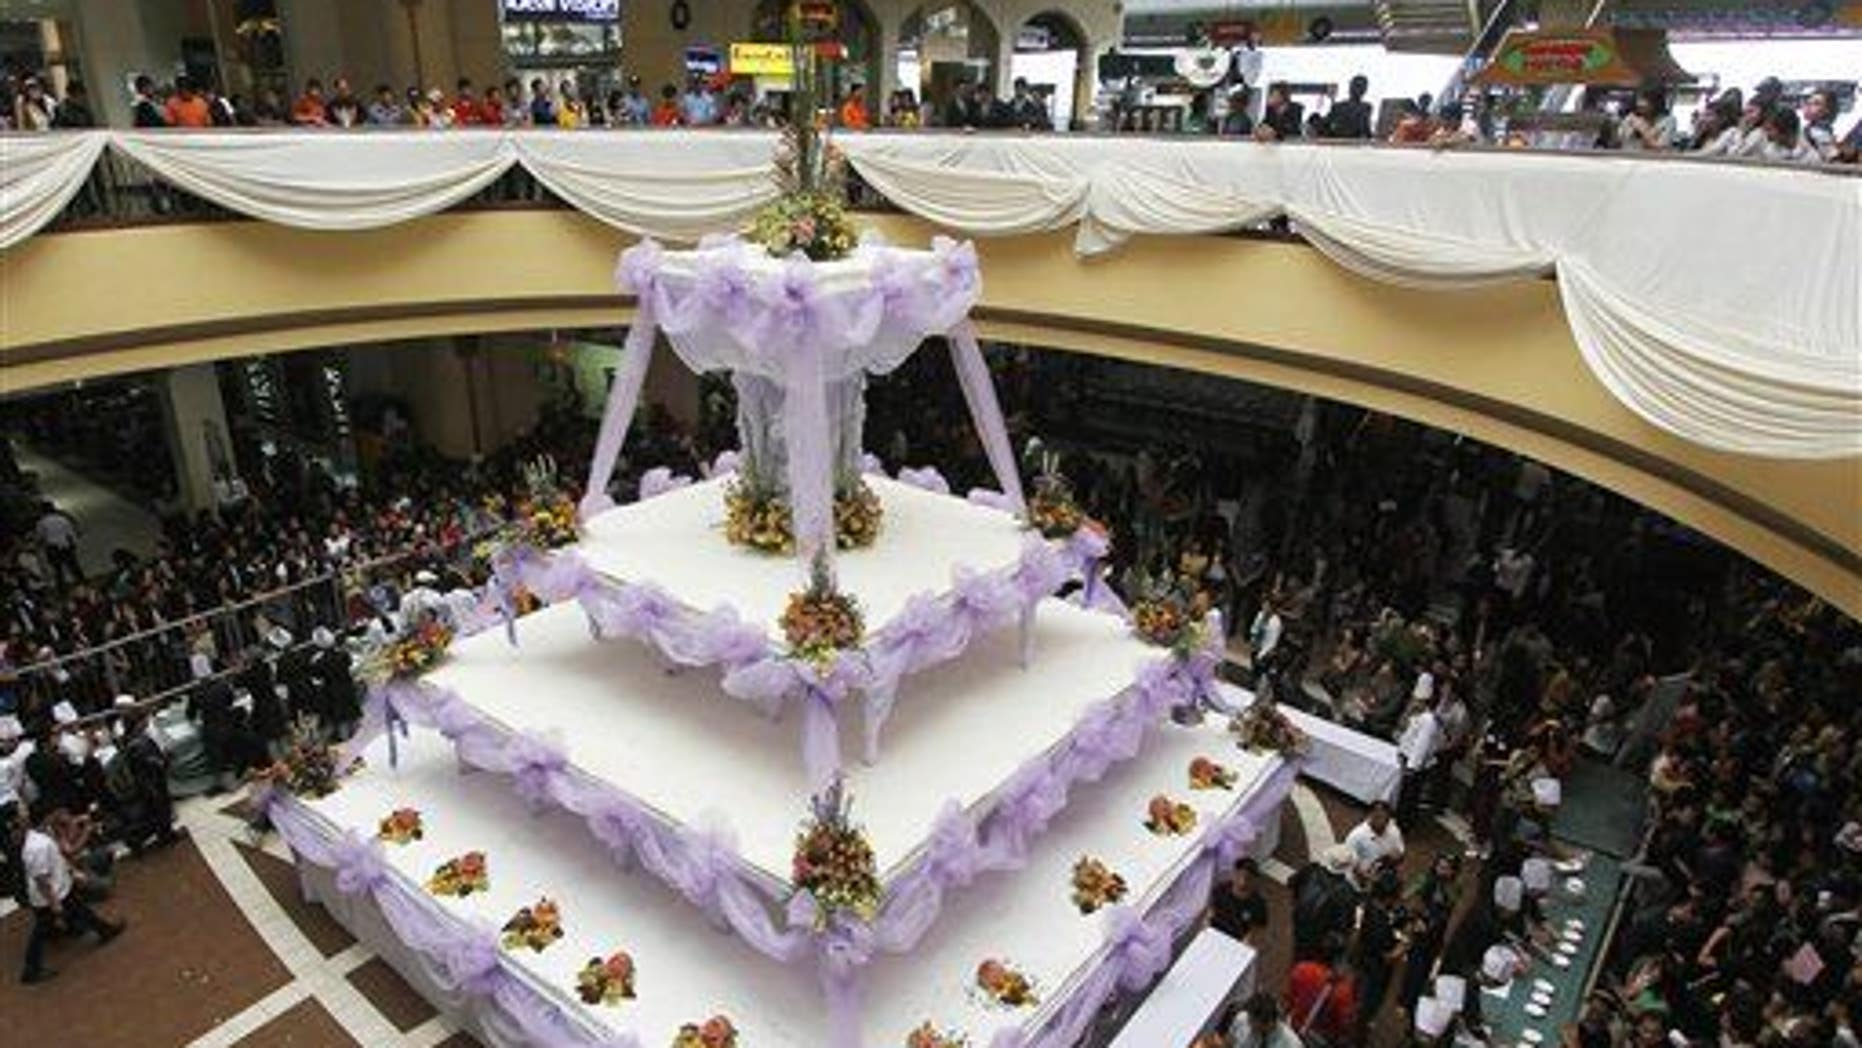 If you need a wedding cake as big as this one, from the northern Philippines, you may be in for an excellent marriage.